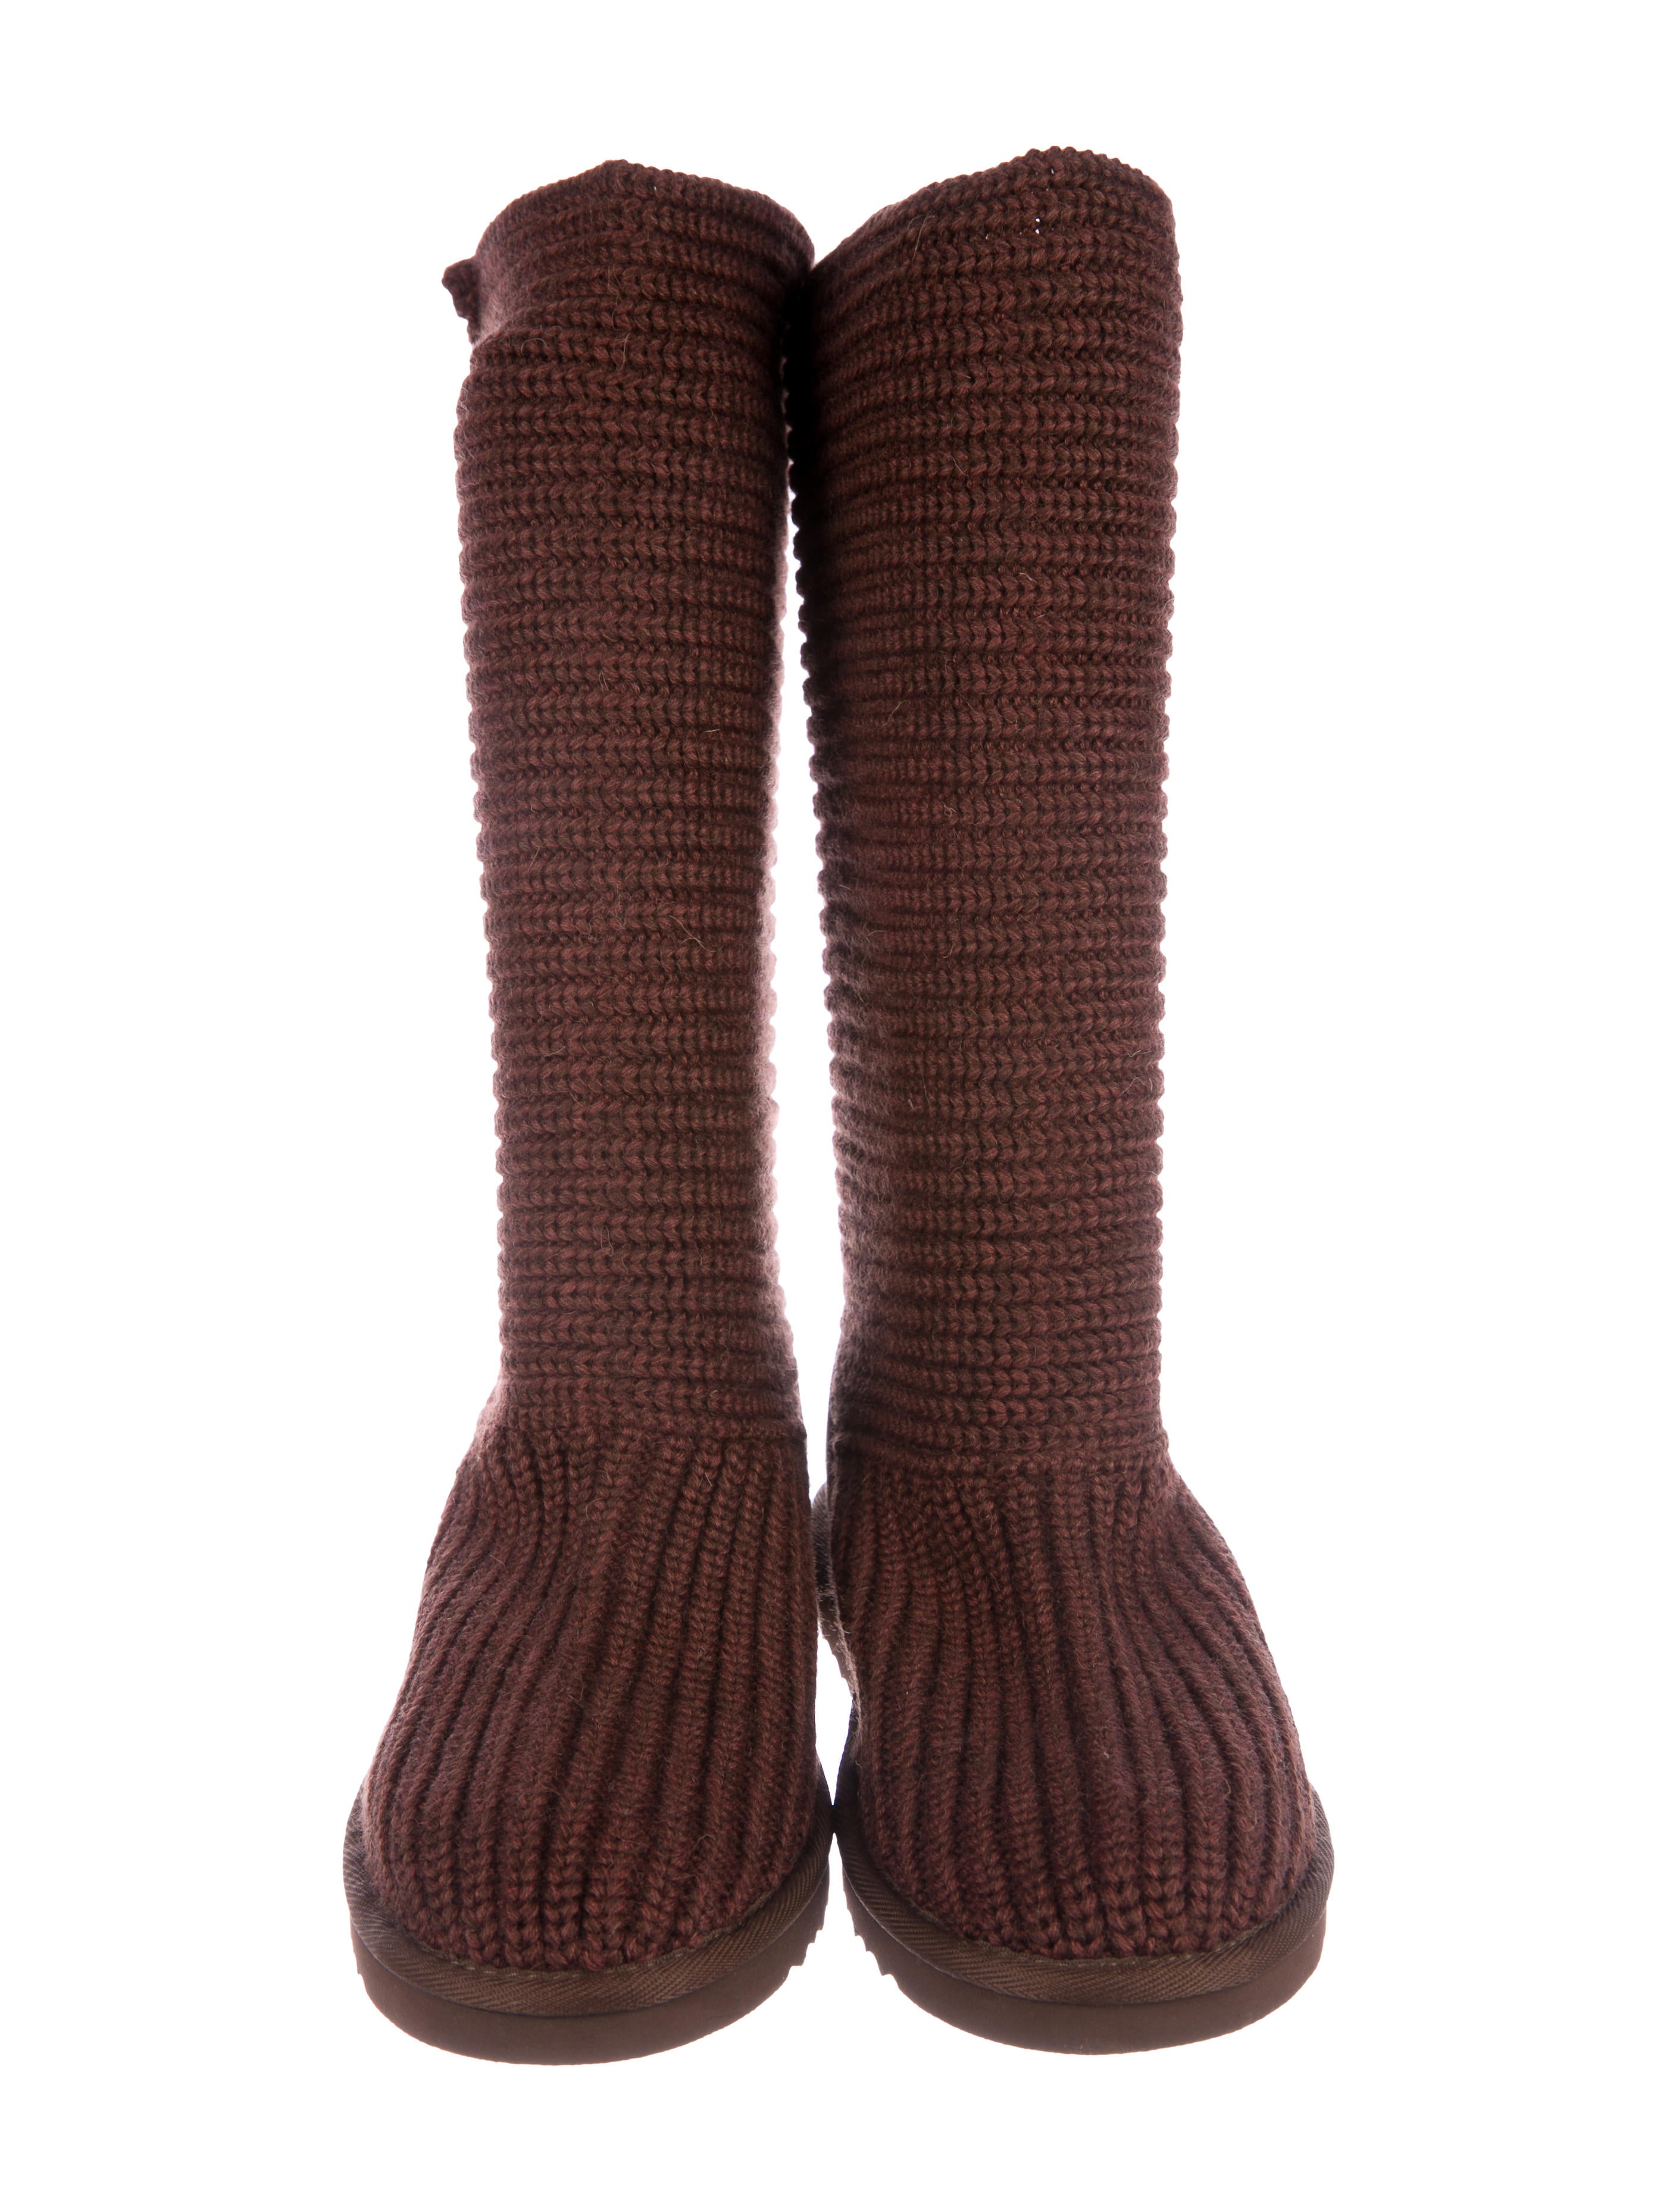 UGG Australia Knit Shearling-Trimmed Boots w/ Tags discounts clearance best really for sale oWXa9LJ91